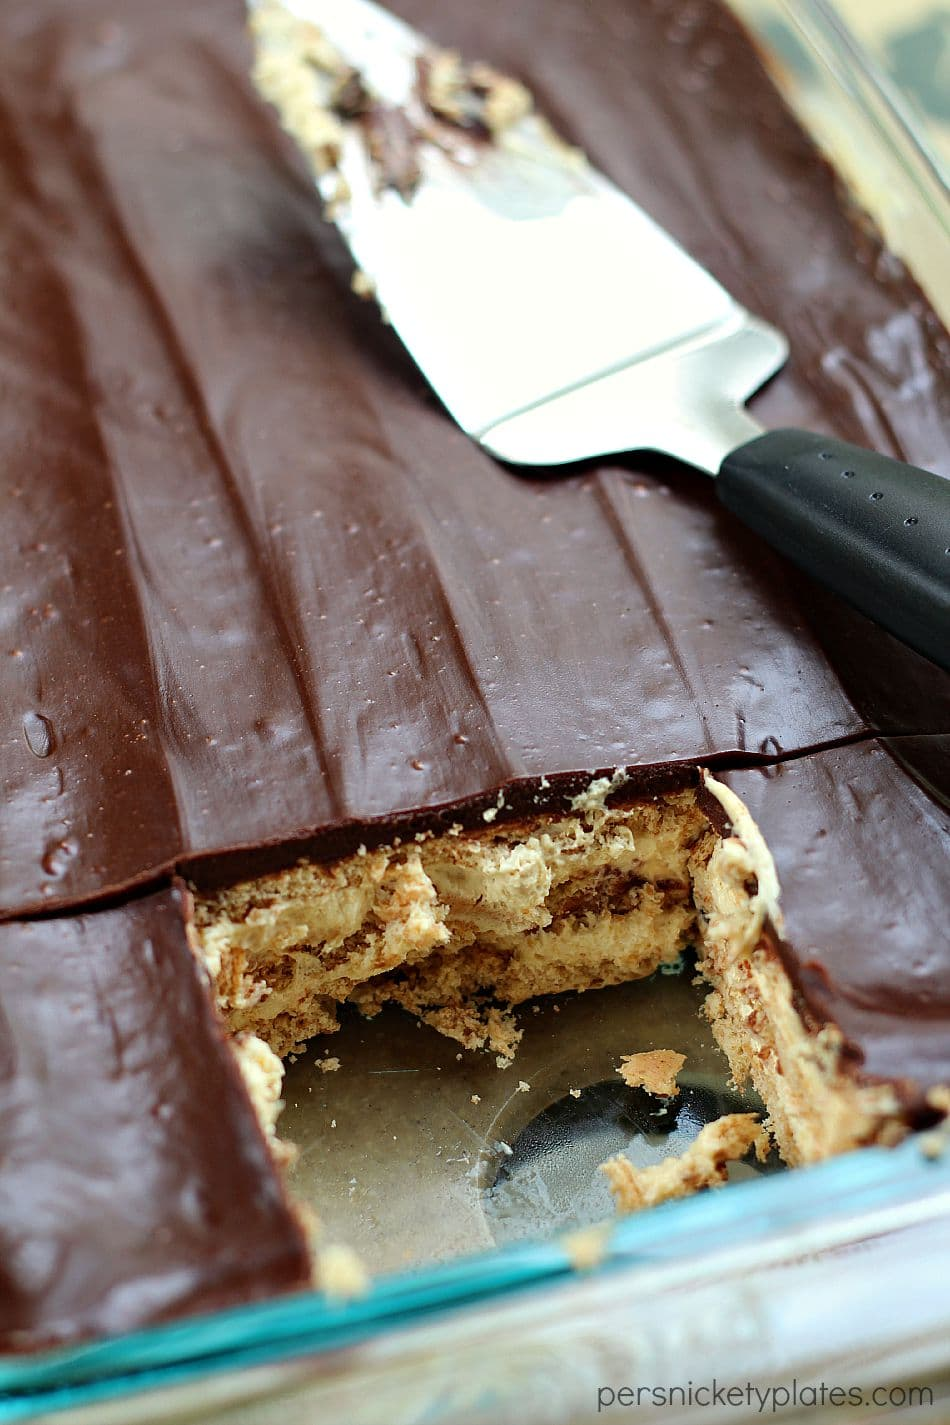 pan of chocolate peanut butter eclair dessert in baking dish with serving spoon